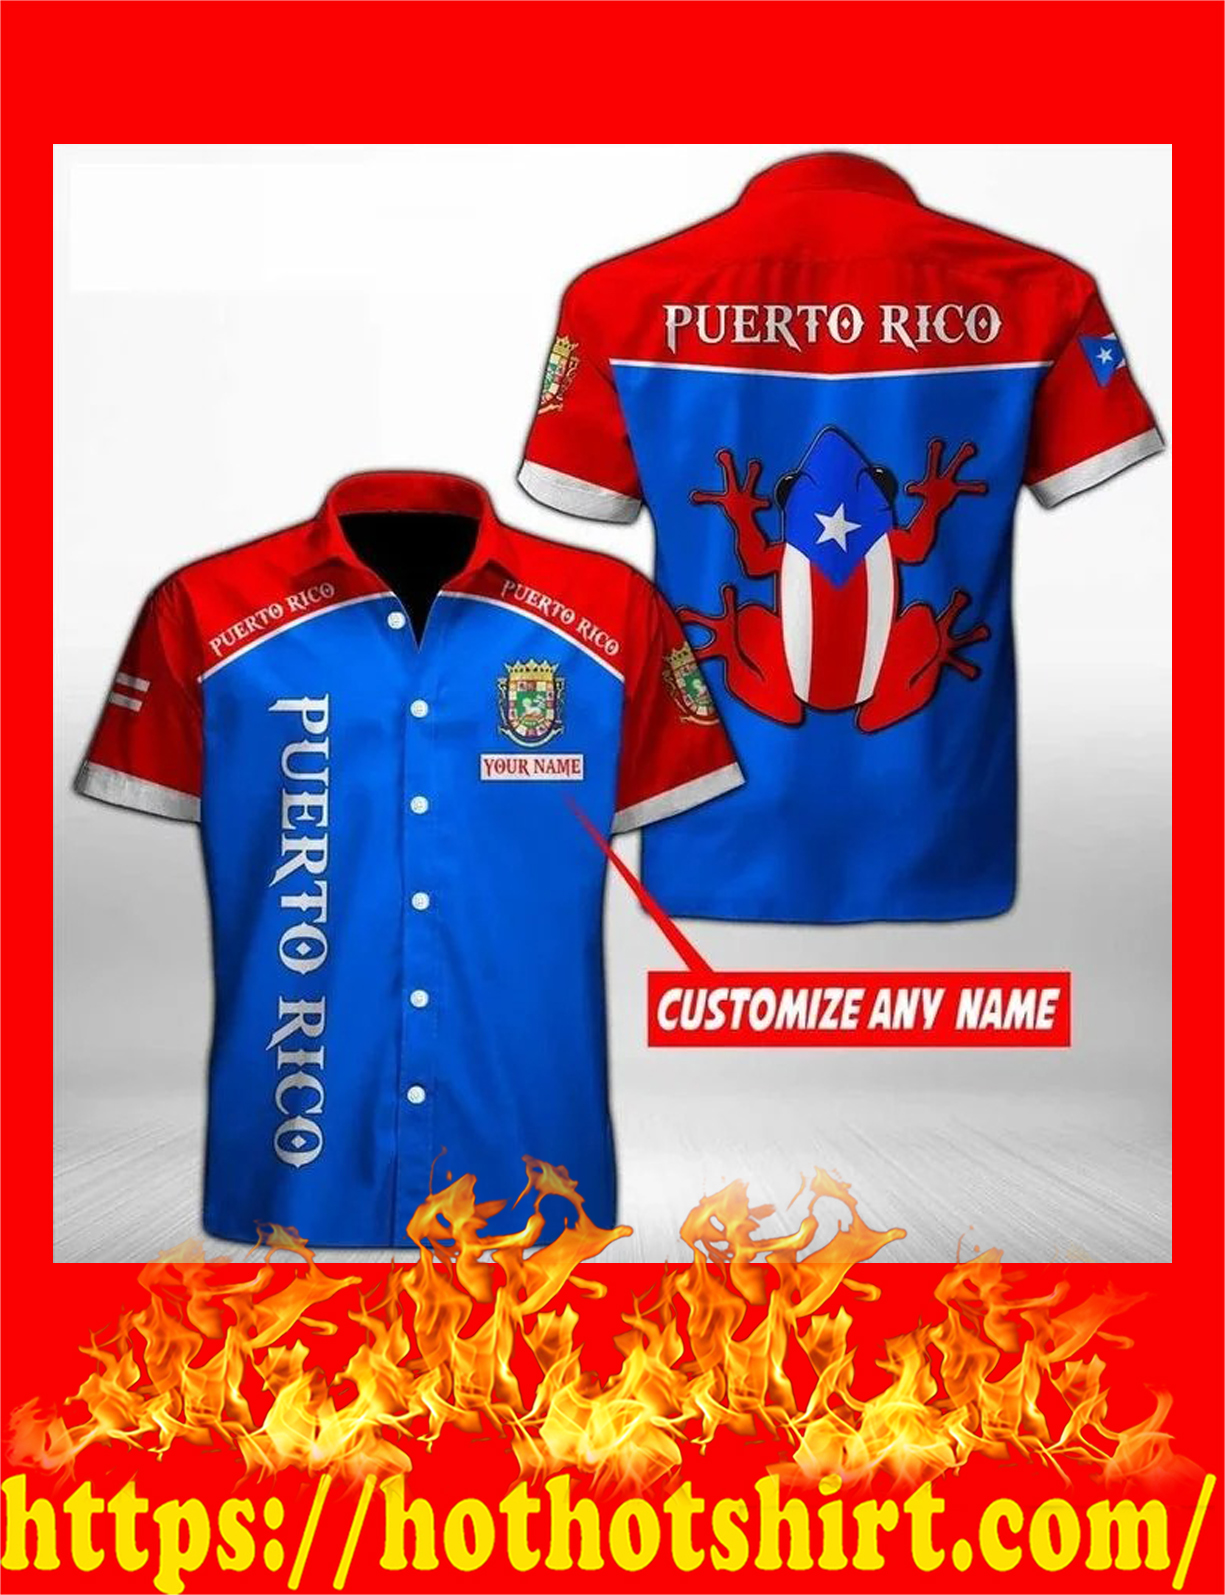 Personalize custom name Puerto rico hawaiian shirt - detail